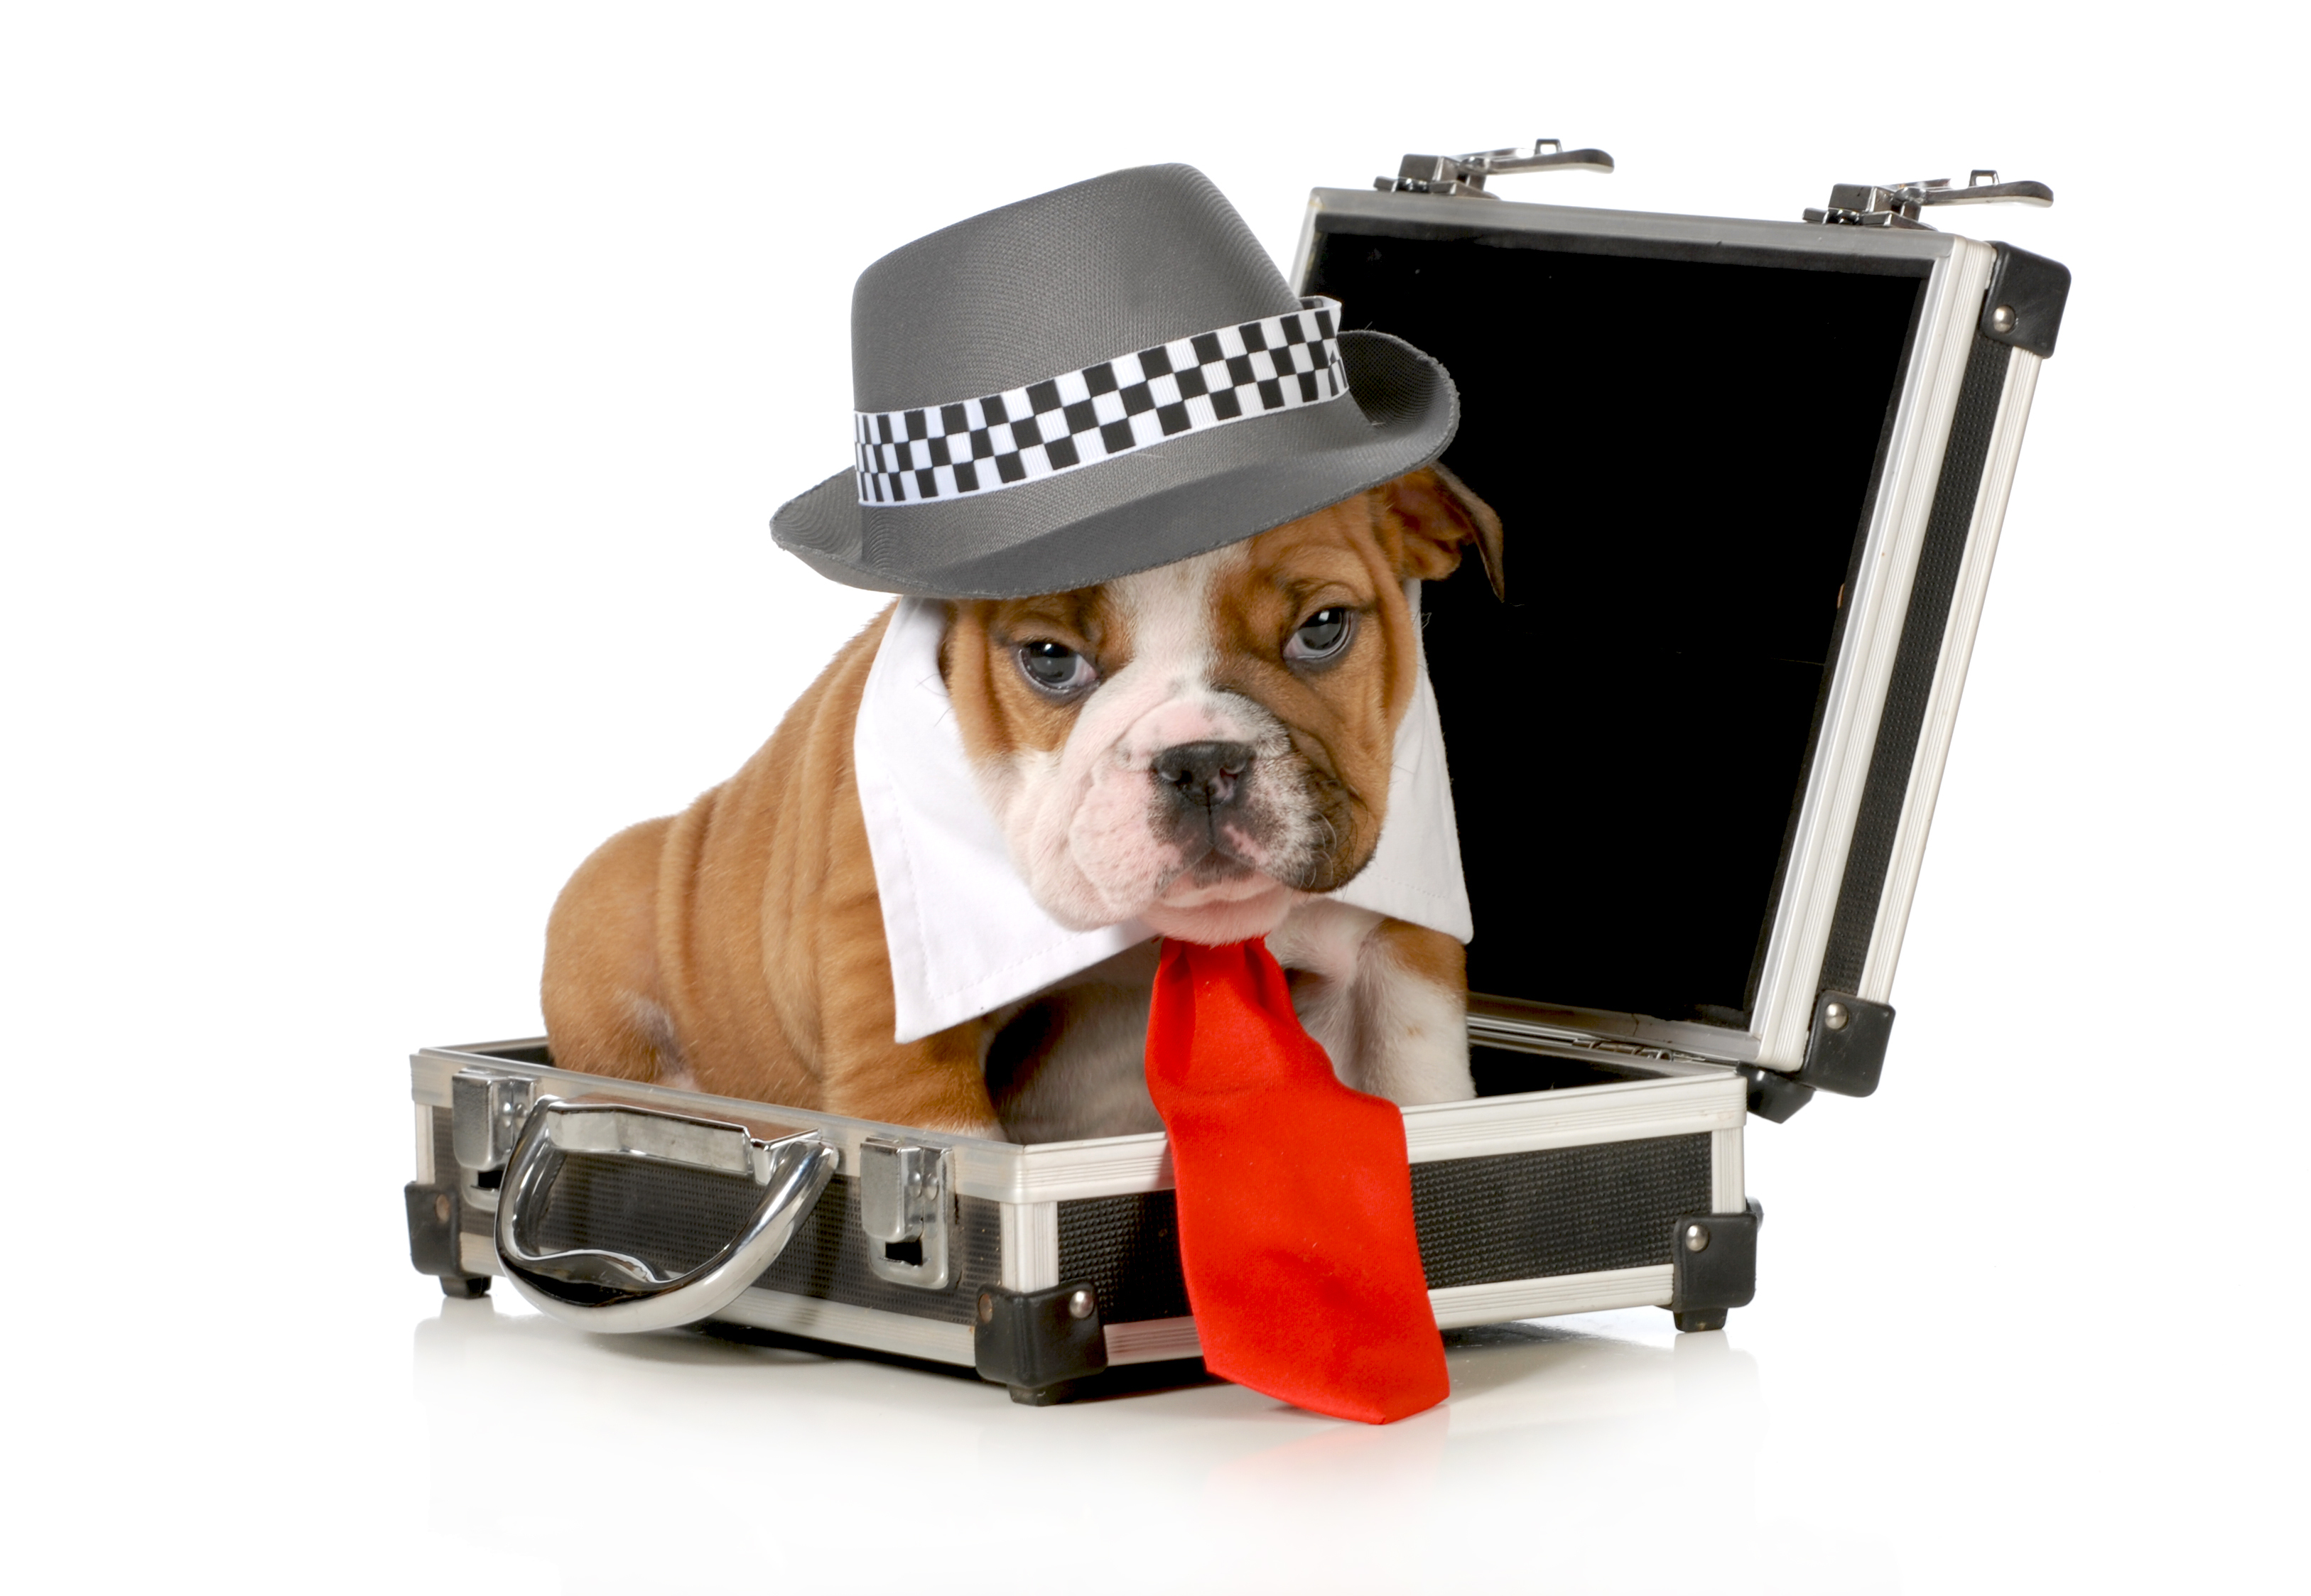 Dog with hat and tie in suitcase ready to travel.